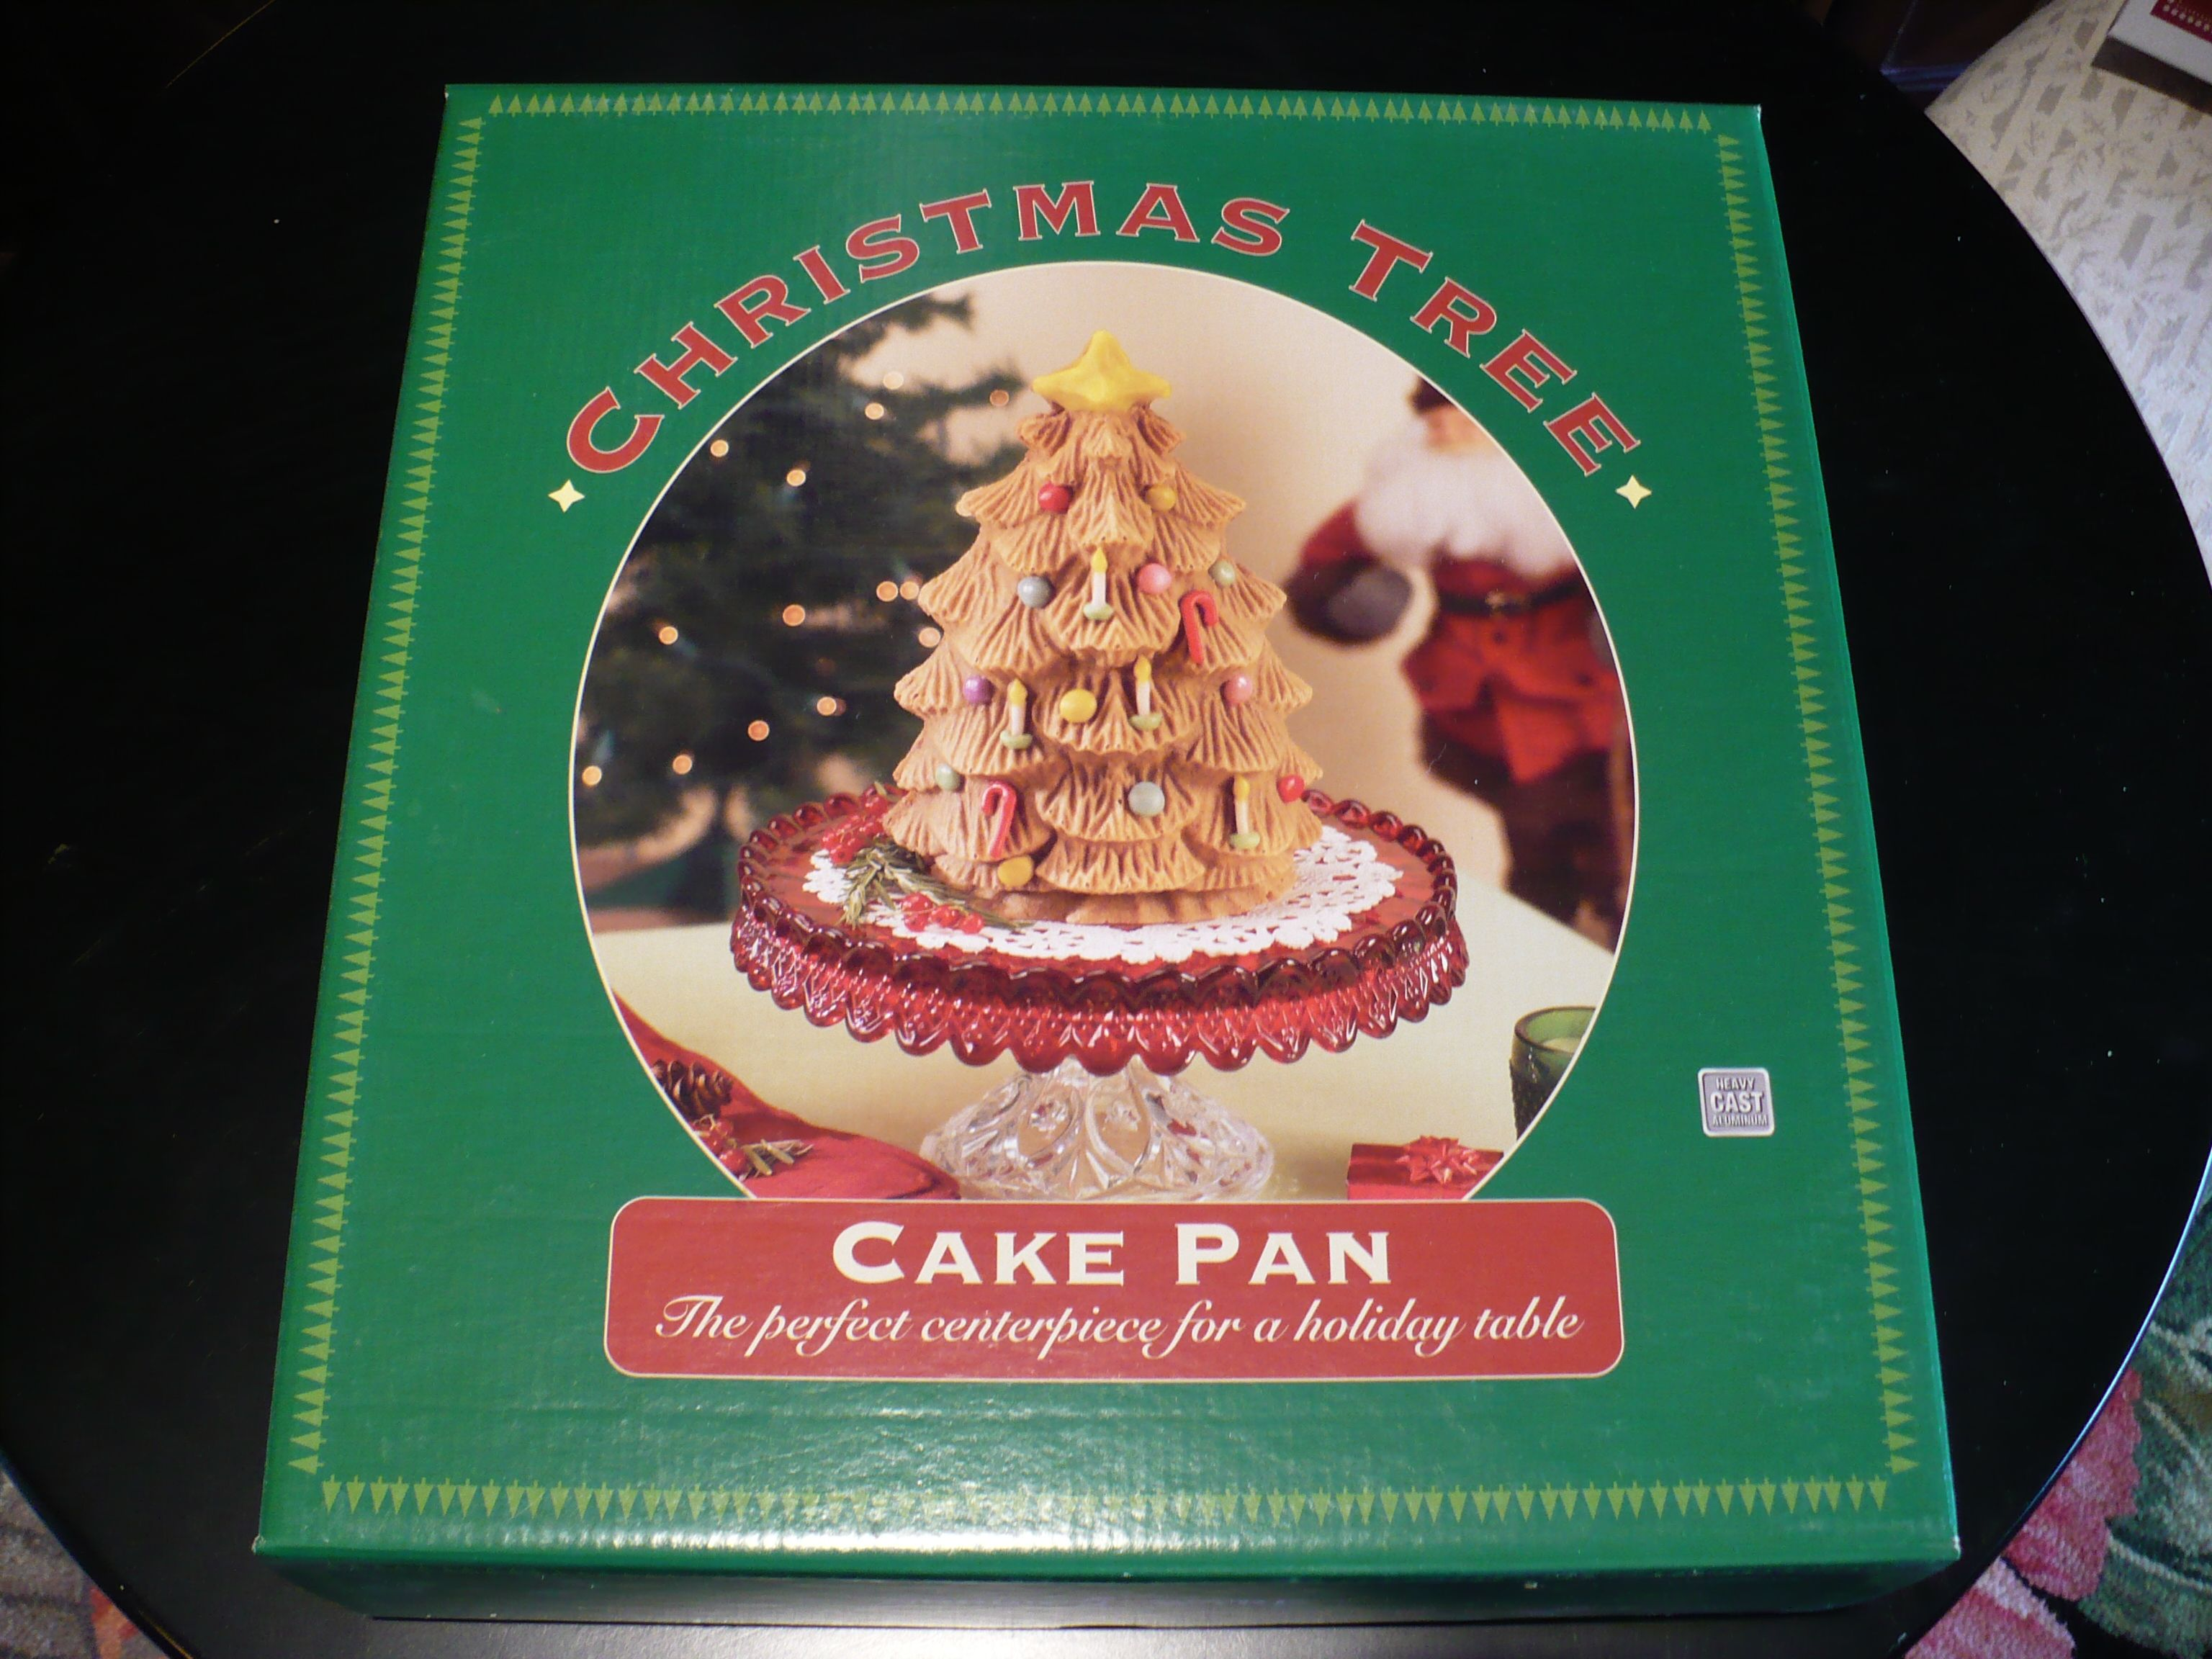 FOR SALE: Williams Sonoma Christmas Tree Cake Pan - NEVER OPENED